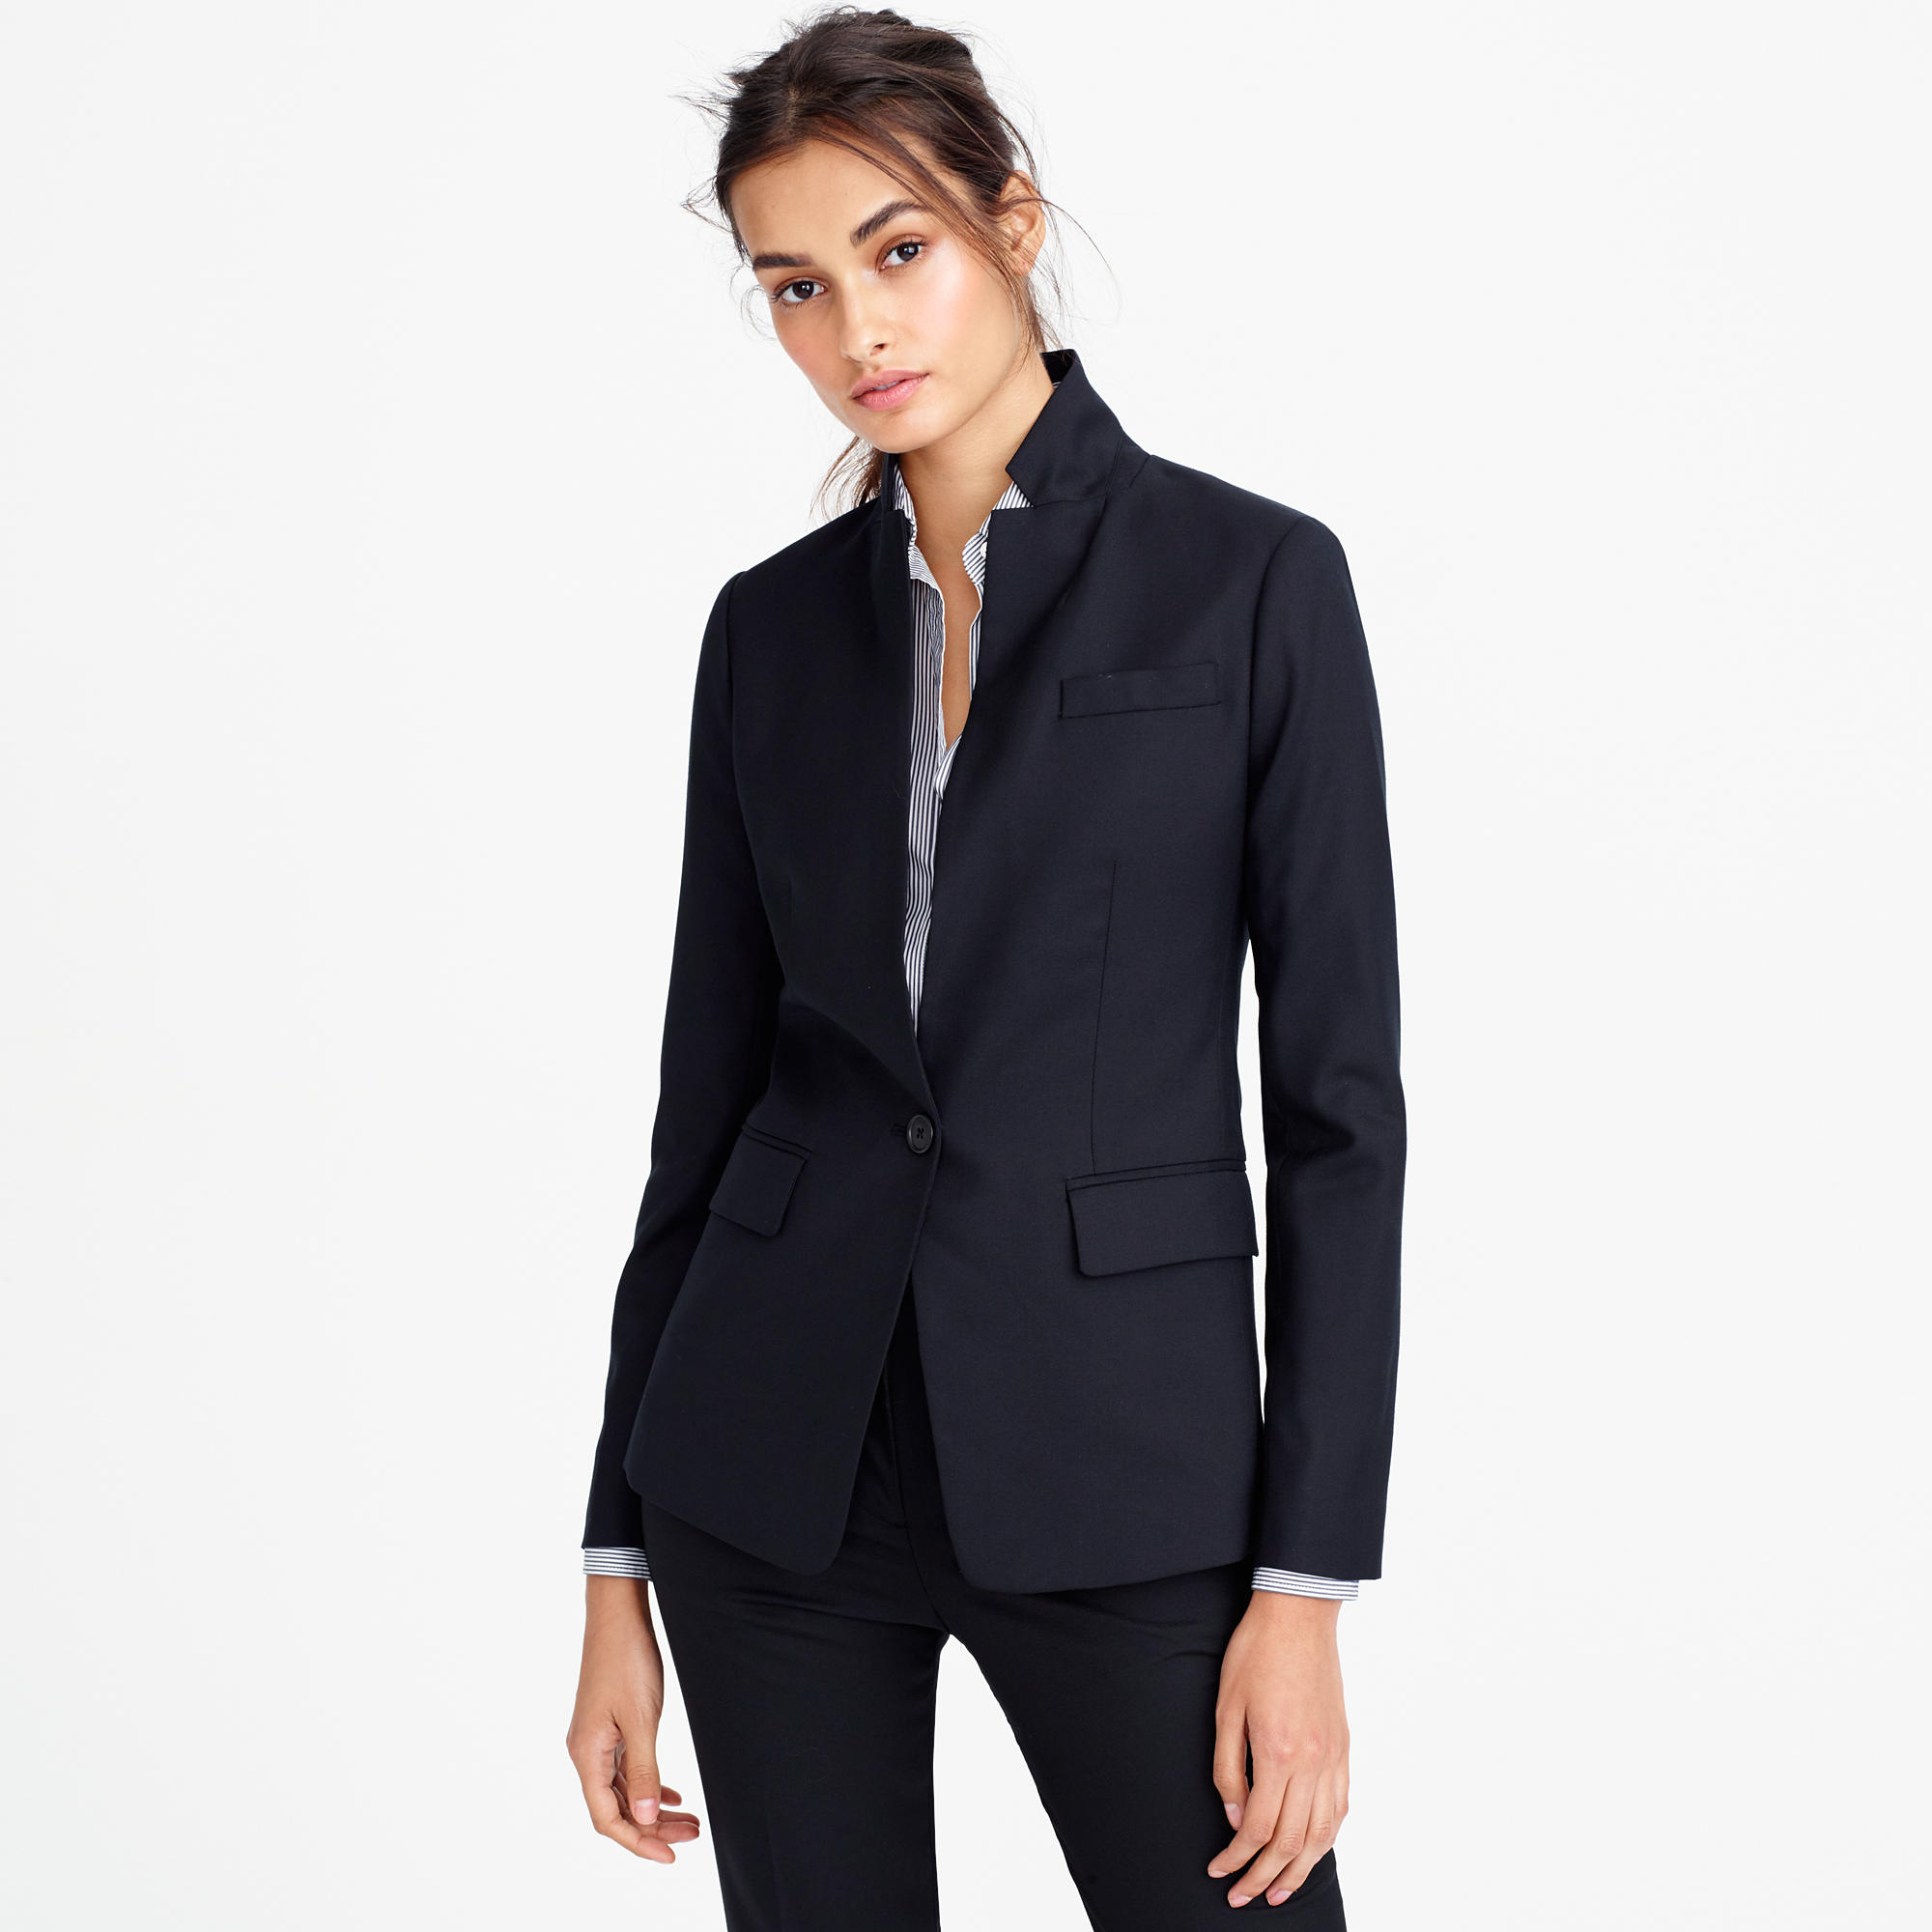 Women's Dress Suits & Wool Suits : Women's Suiting | J.Crew